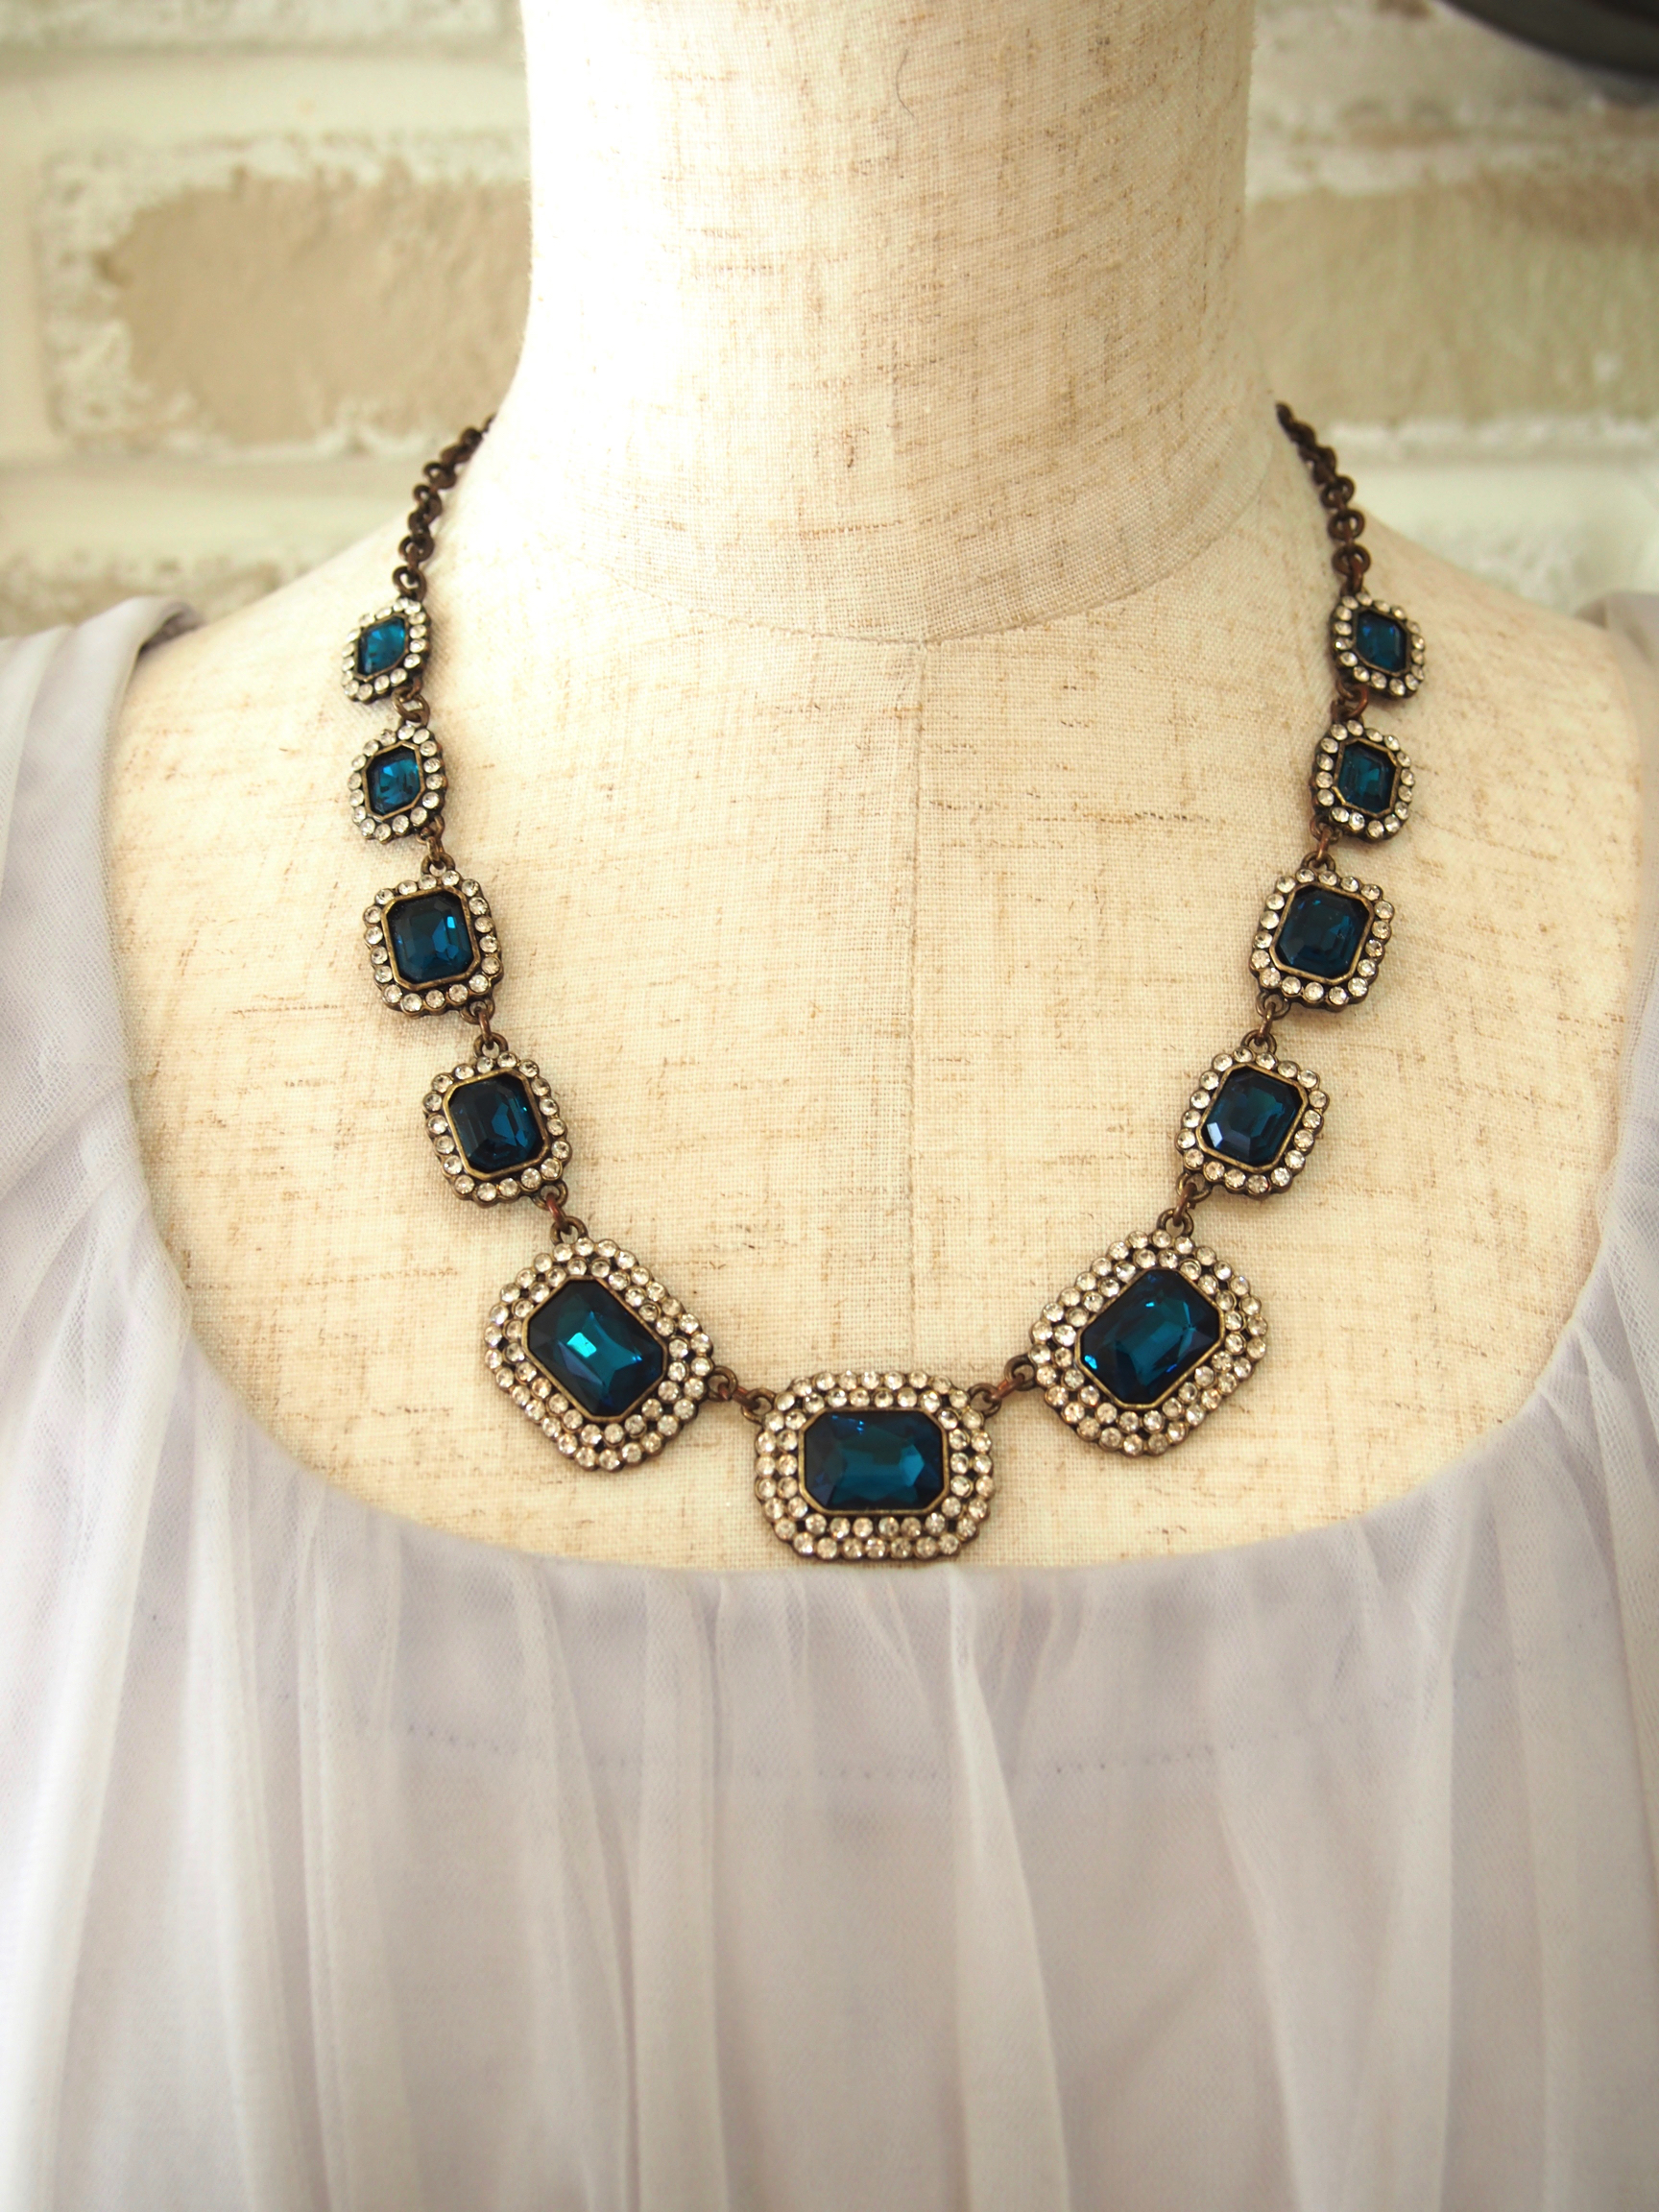 nr_necklace_066